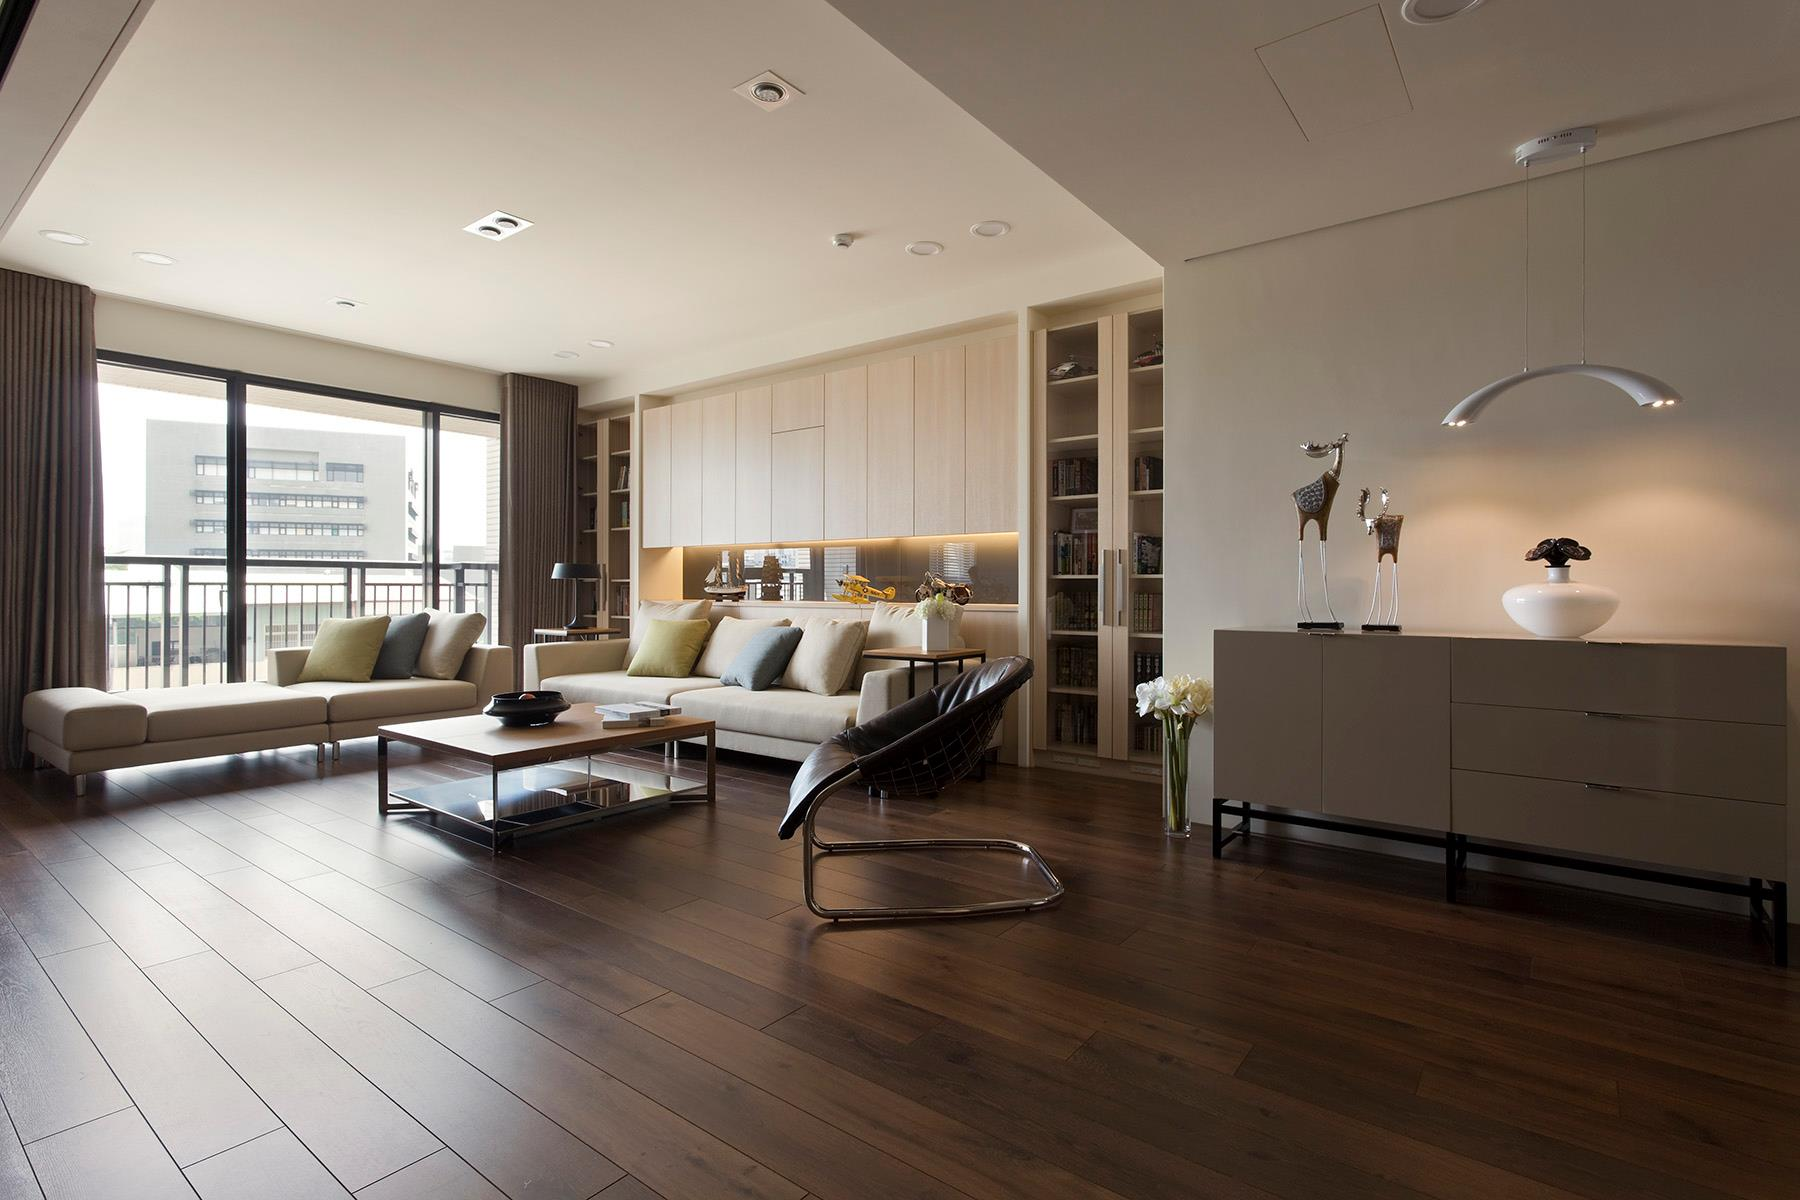 Apartment with a retractable interior wall - Interior of living room pictures ...